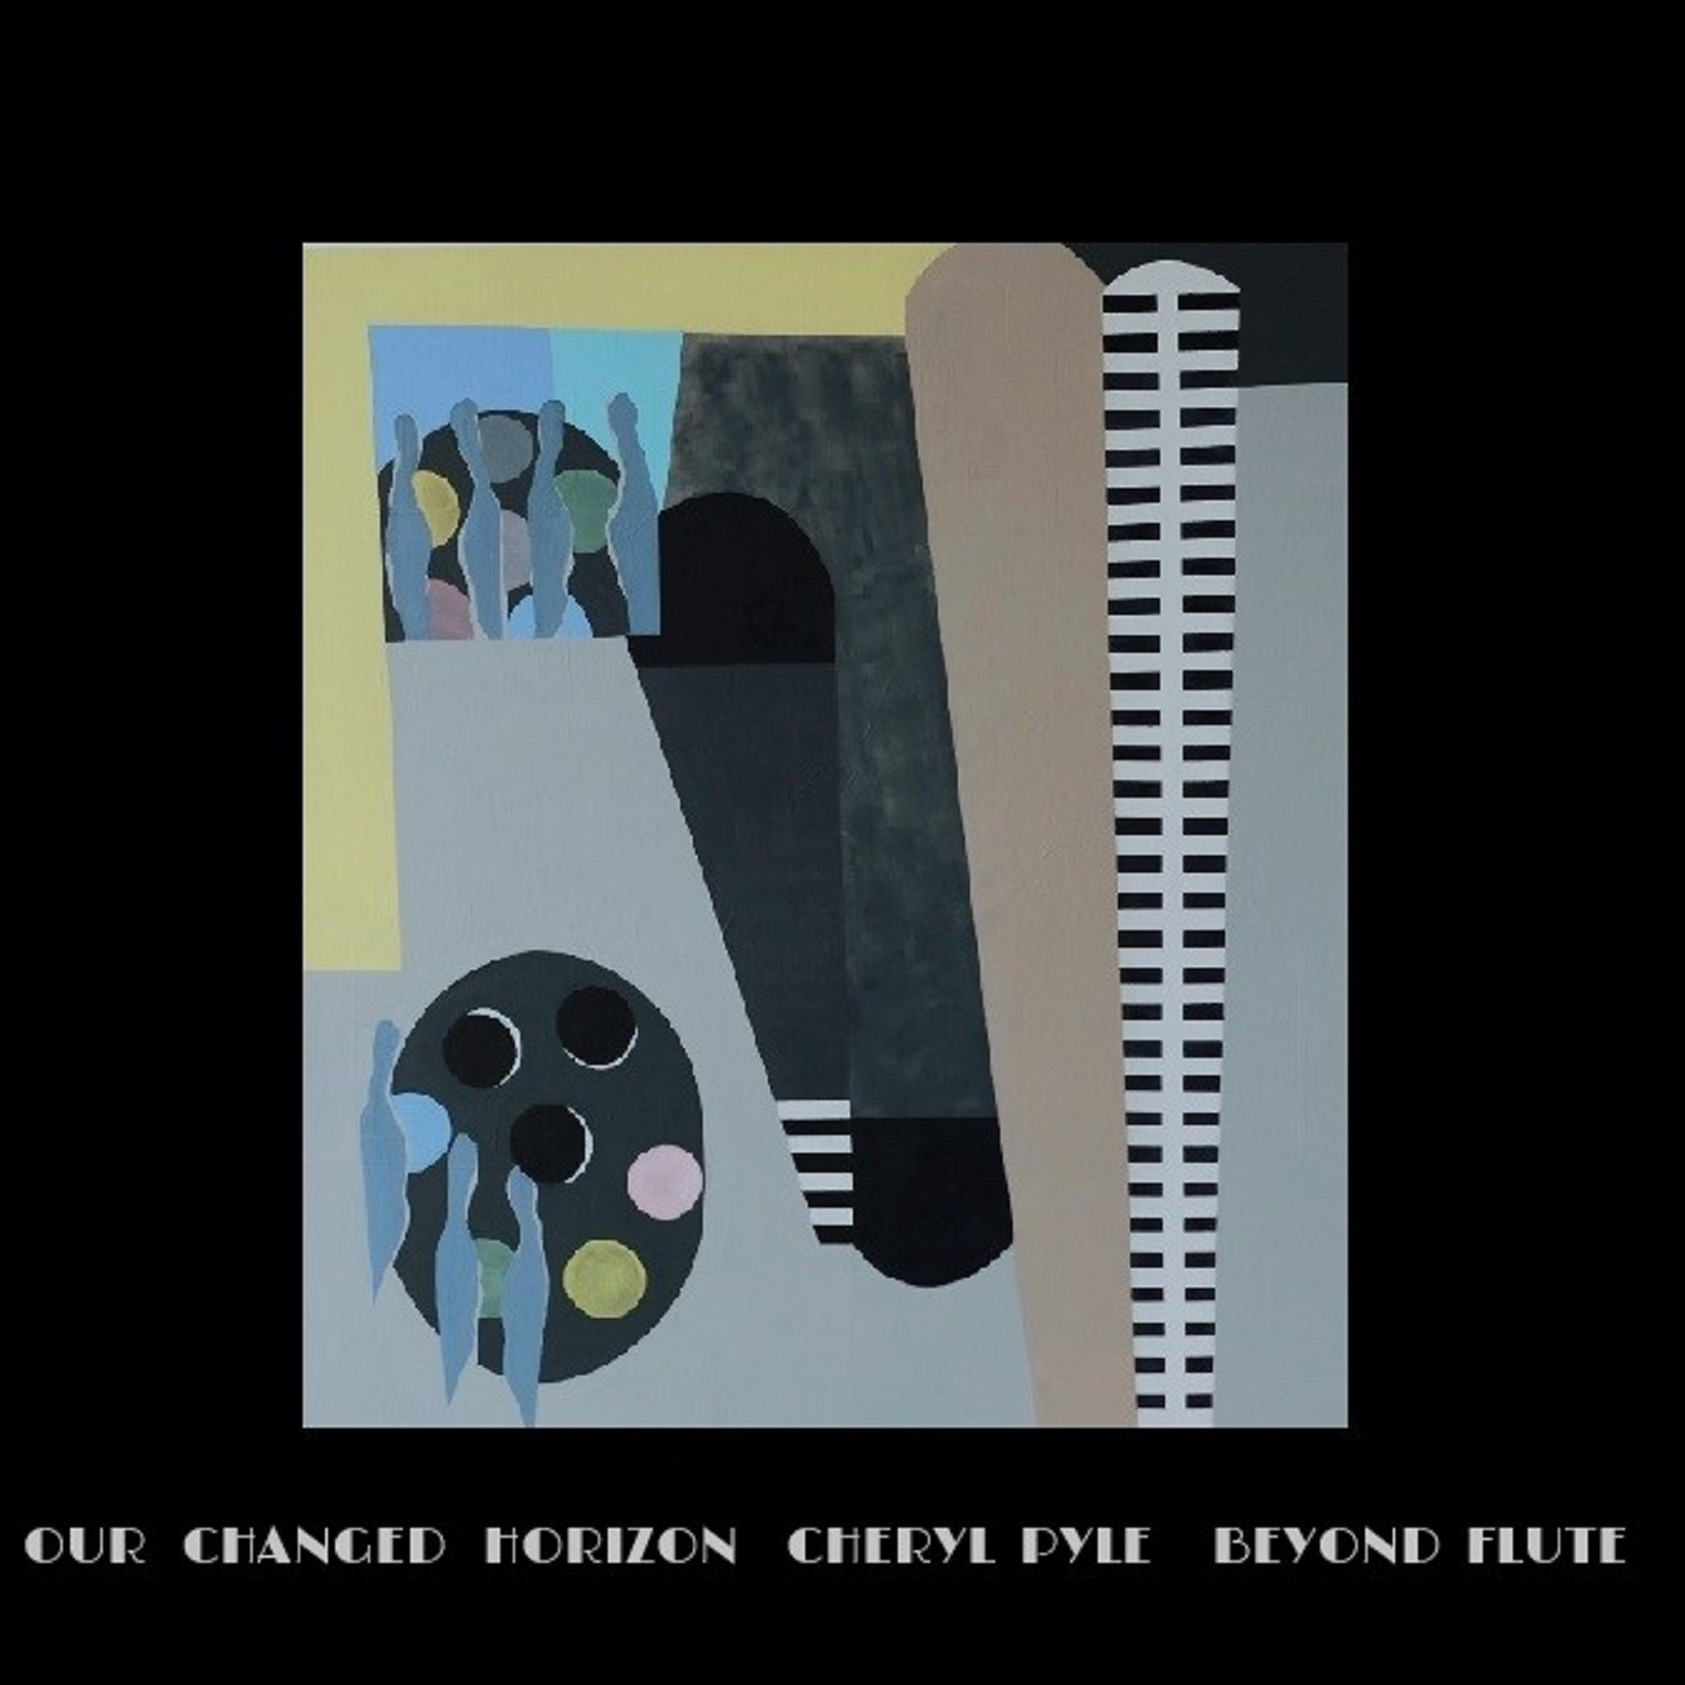 Our Changed Horizon -Cheryl Pyle -Beyond Flute